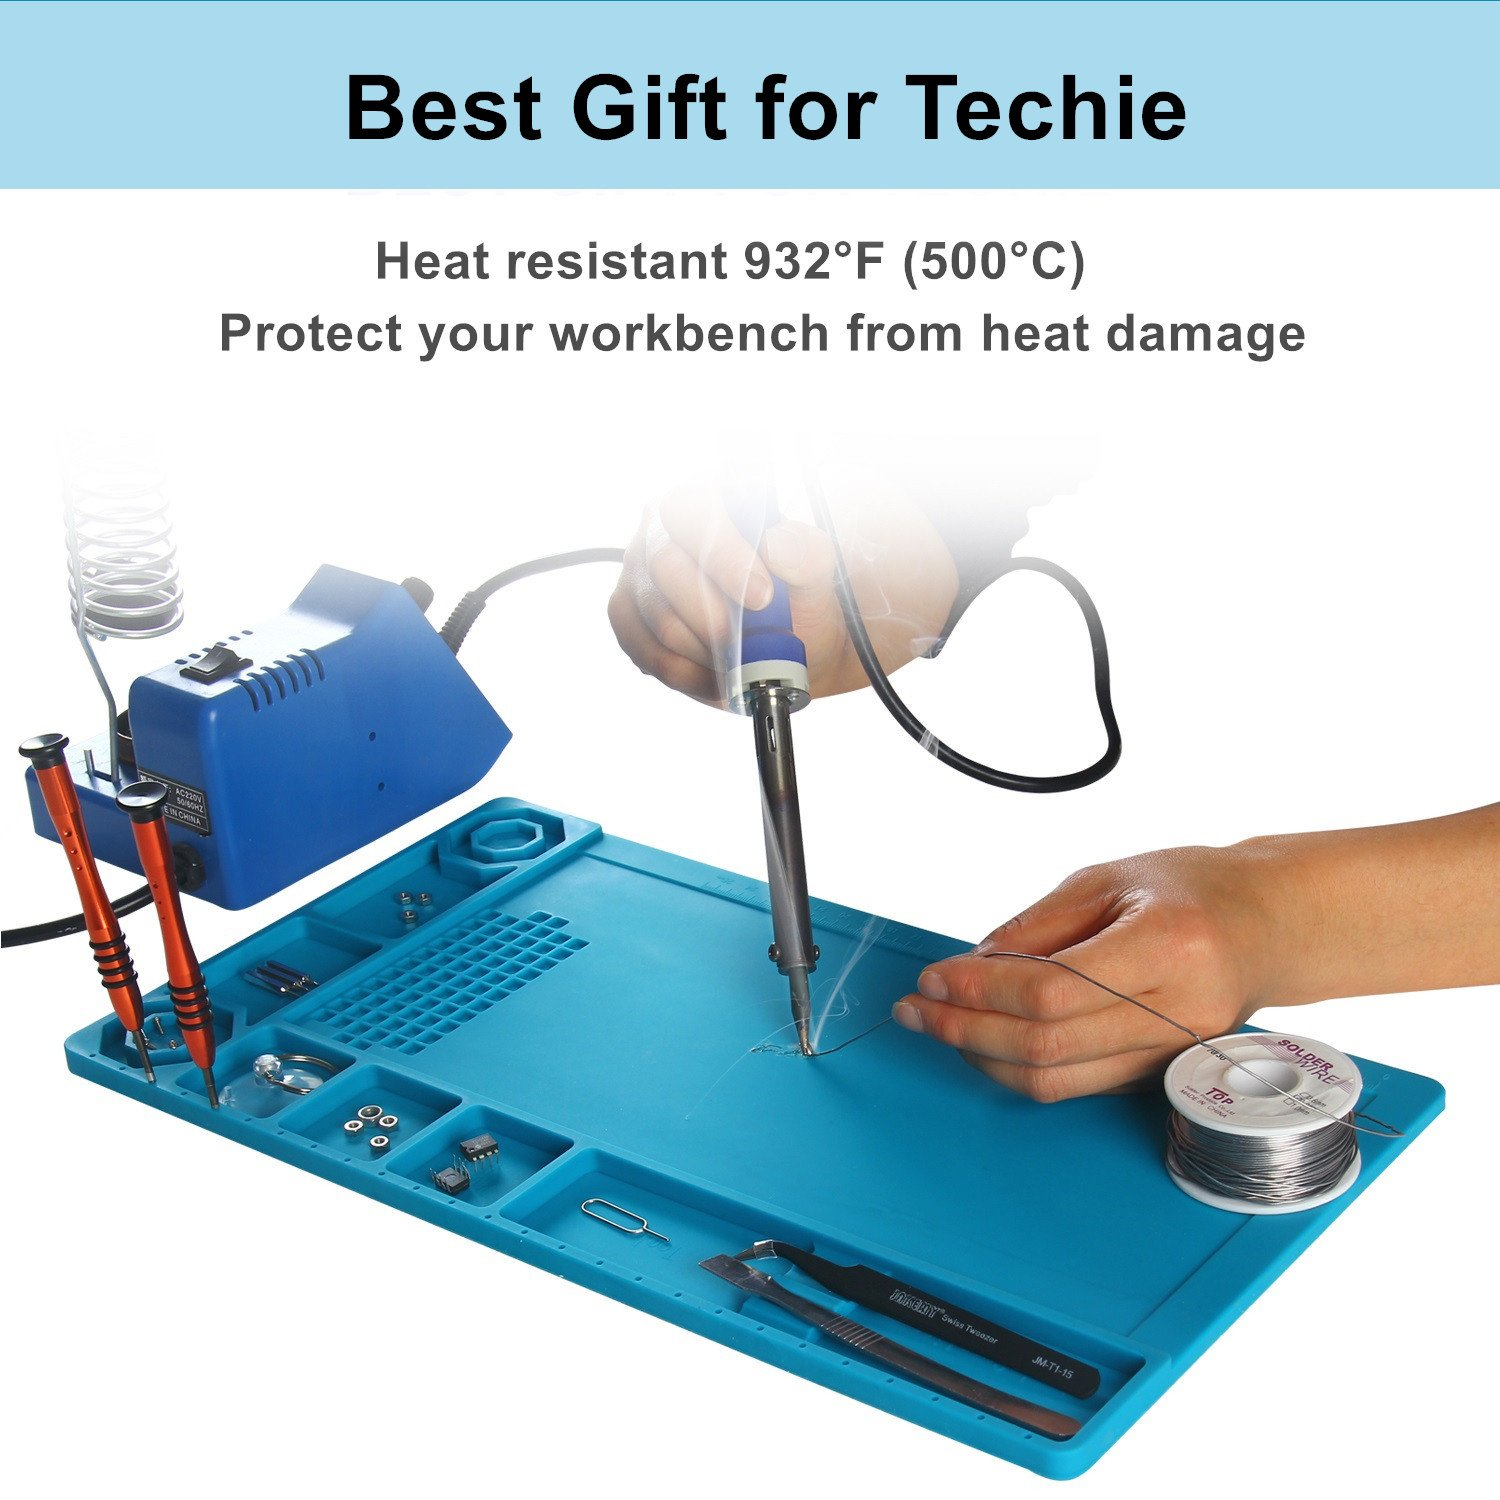 SEASWAL Silicone Solder Mat, Magnetic Heat Insulation Work Mat, with Tools Parts Organizer Electronics Repair Mat for Soldering Iron, Heat Gun, Phone and Computer Repair 15''x8.3'' Blue by SEASWAL (Image #5)